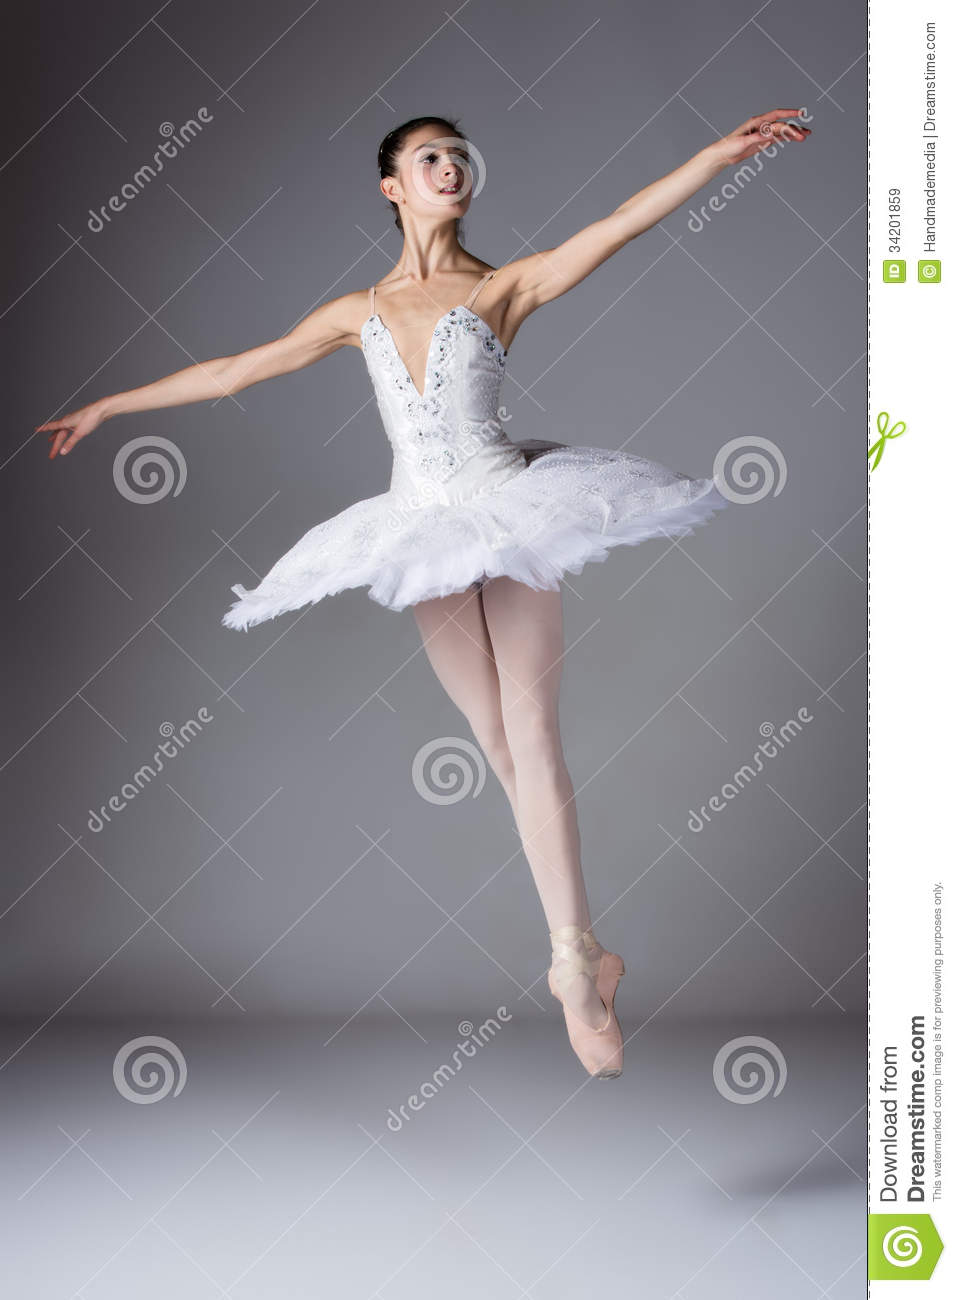 ... grey background. Ballerina is wearing a white tutu and pointe shoes